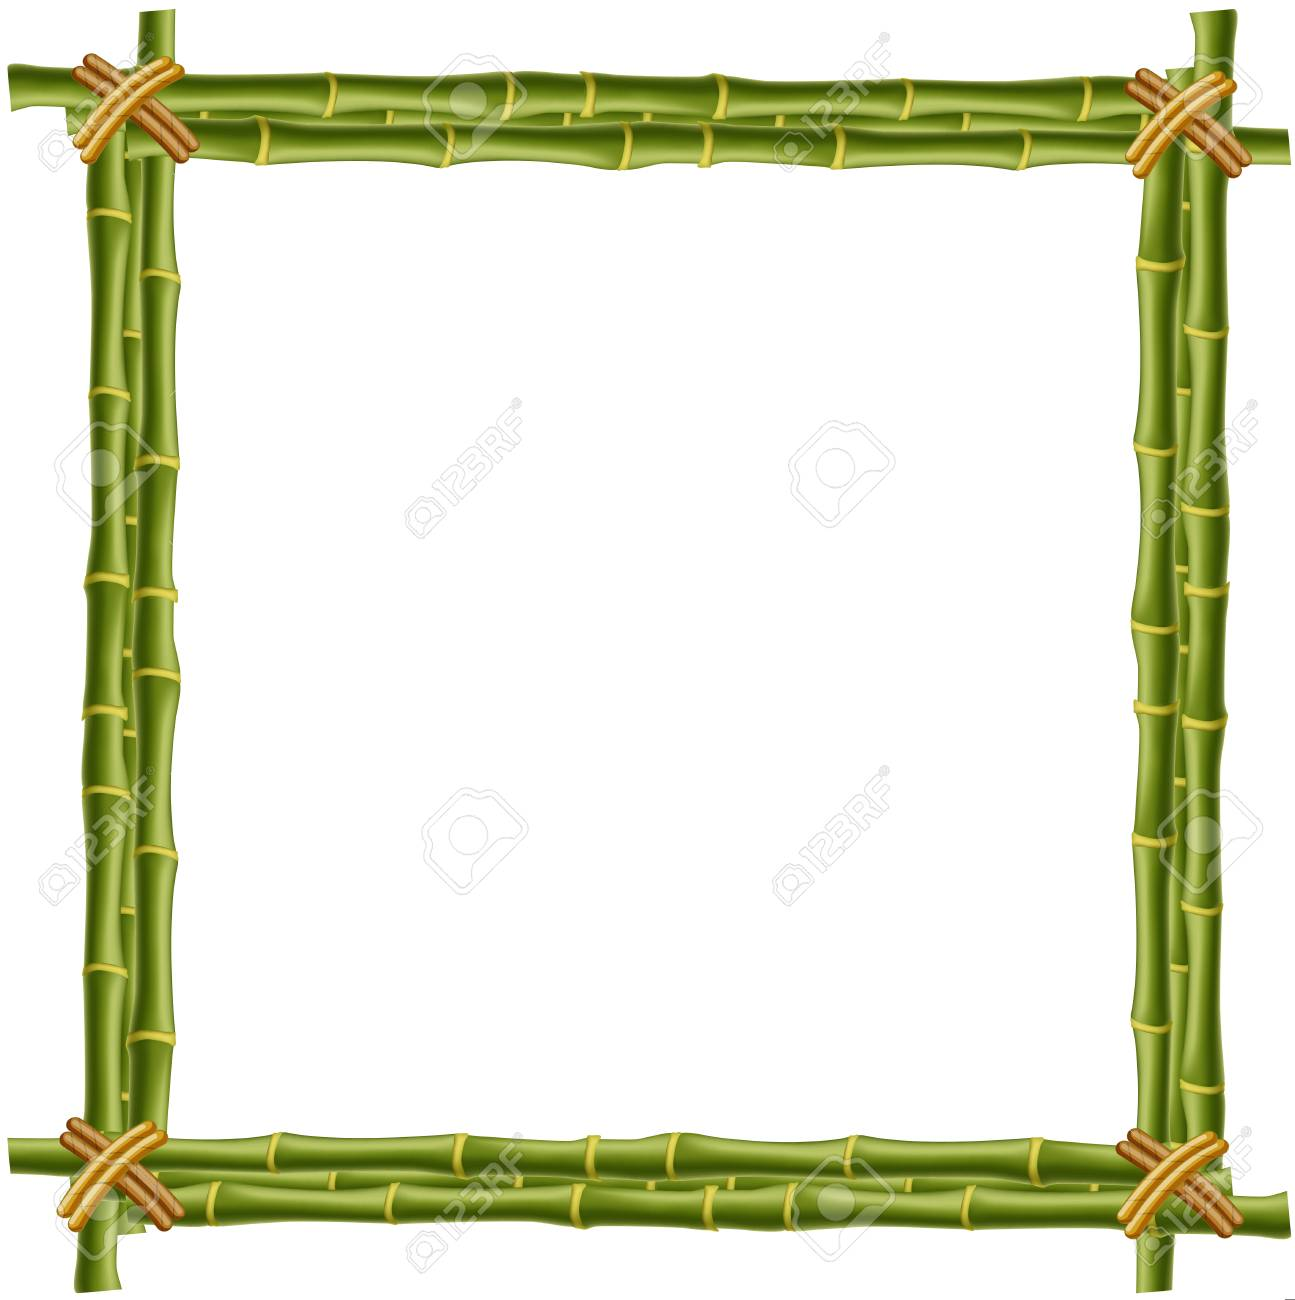 wooden frame made of green bamboo sticks with space for text rh 123rf com